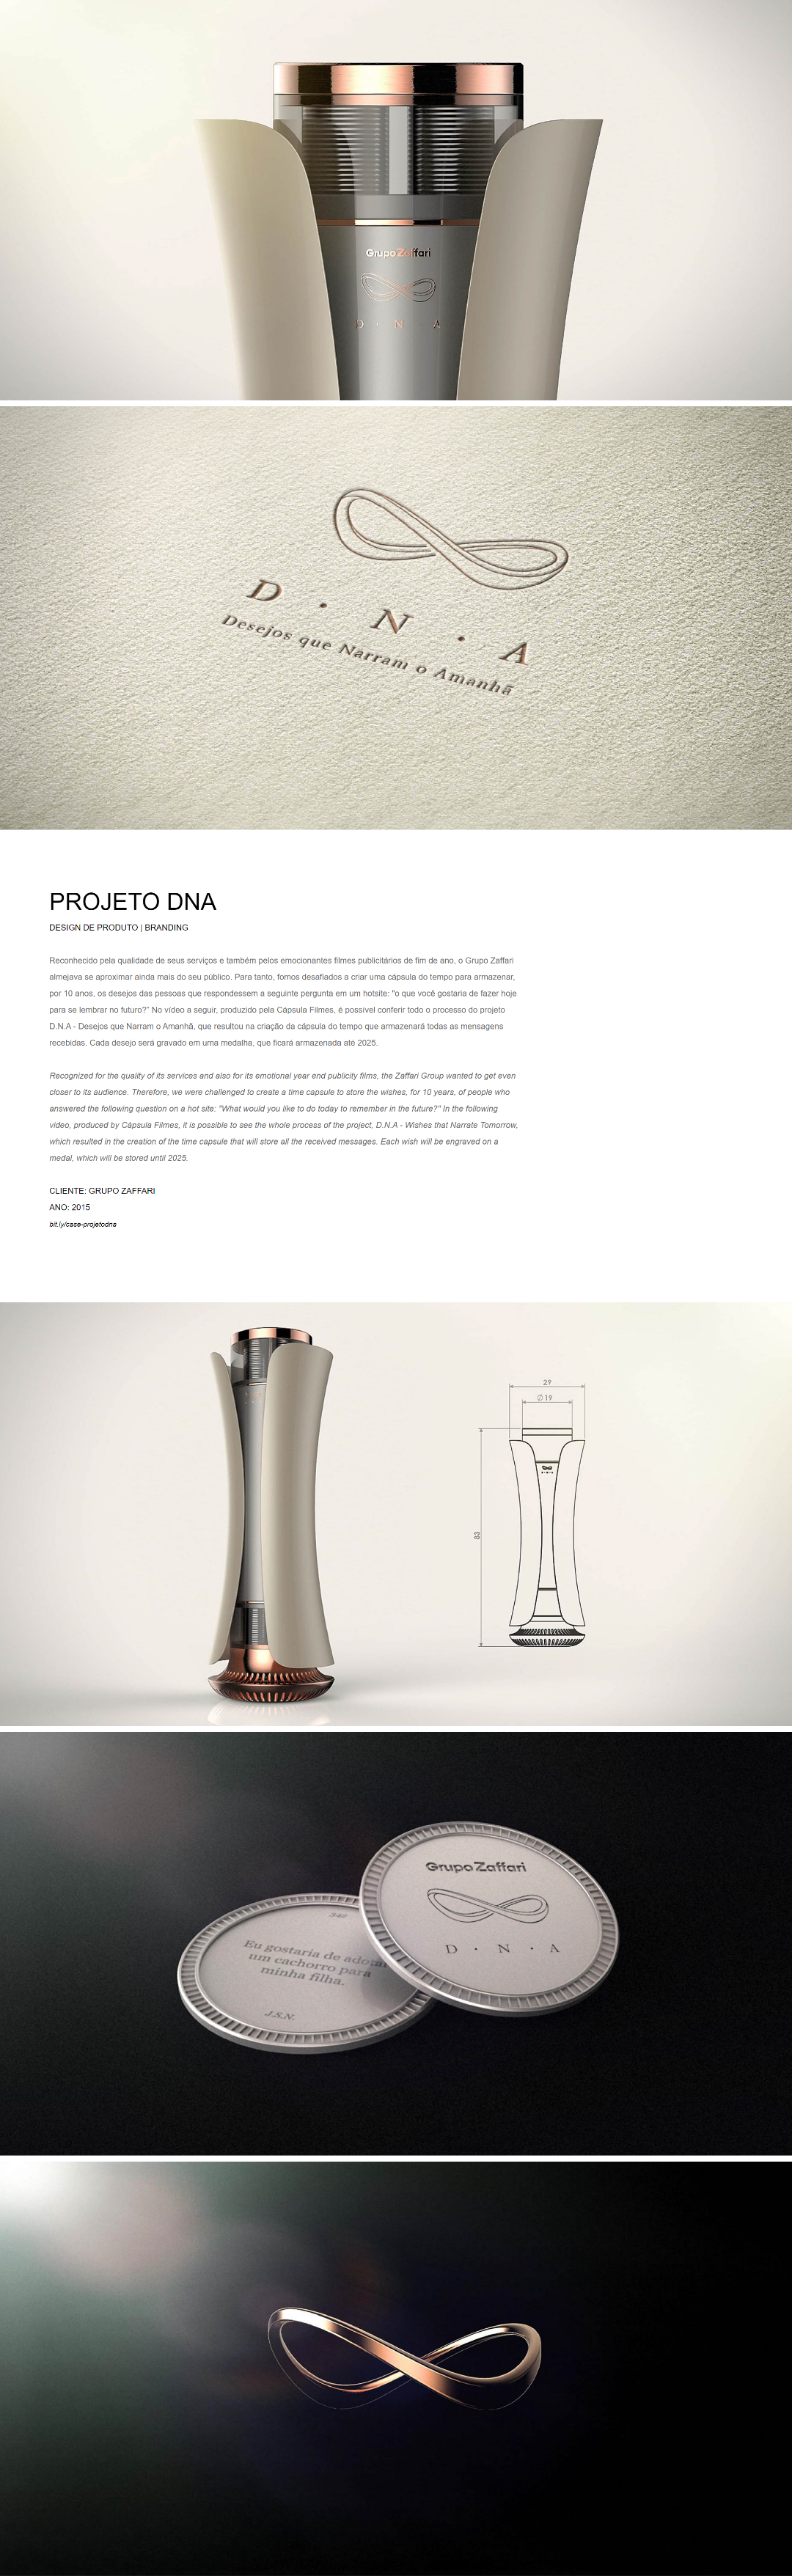 Product Design,Branding,Industrial Design